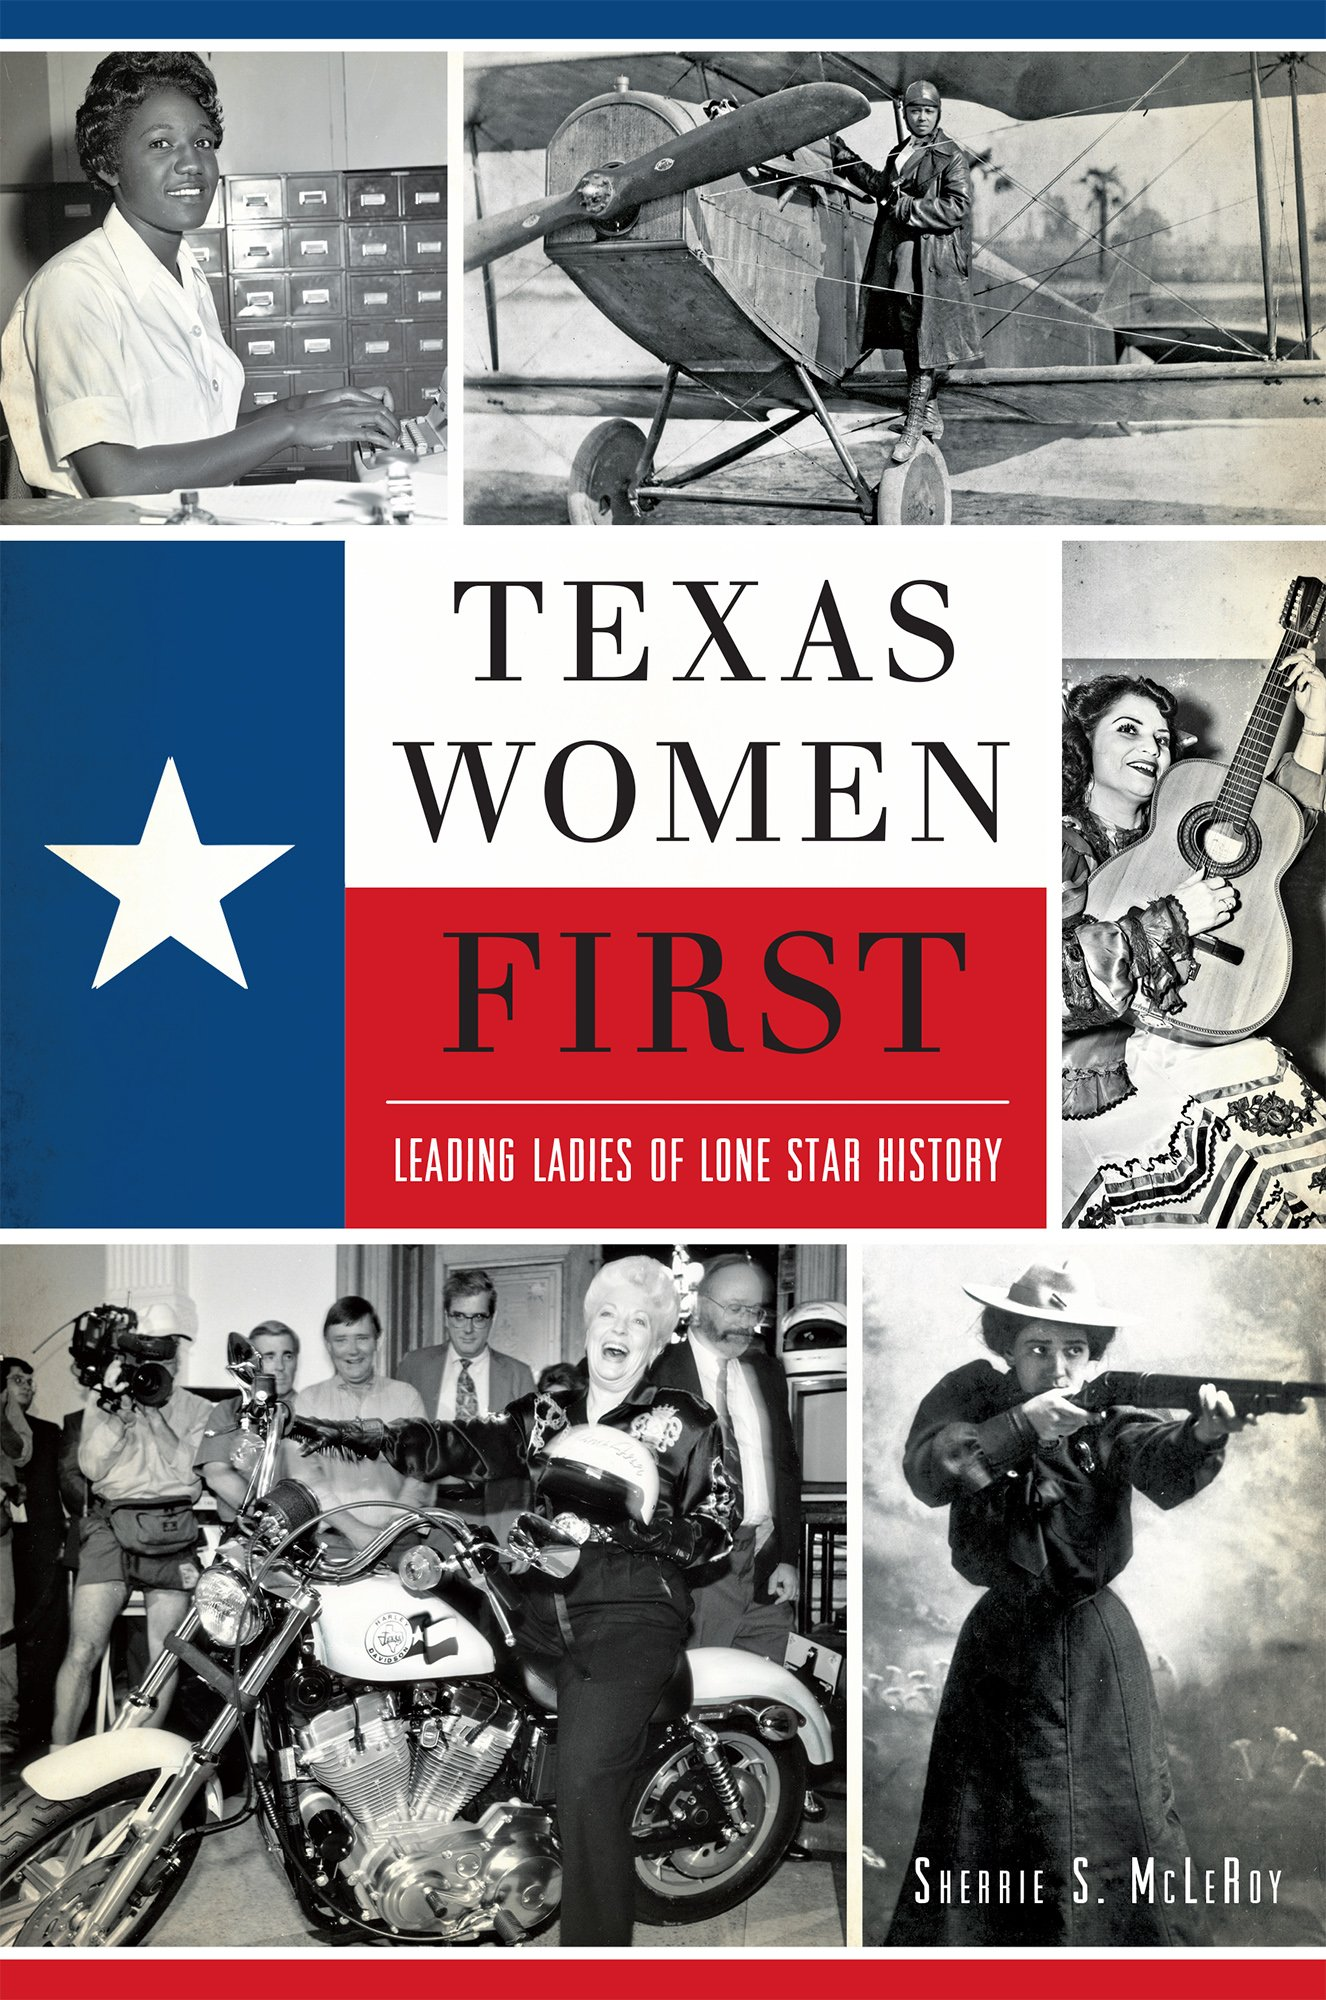 Texas Women First: Leading Ladies of Lone Star History (American Heritage) PDF